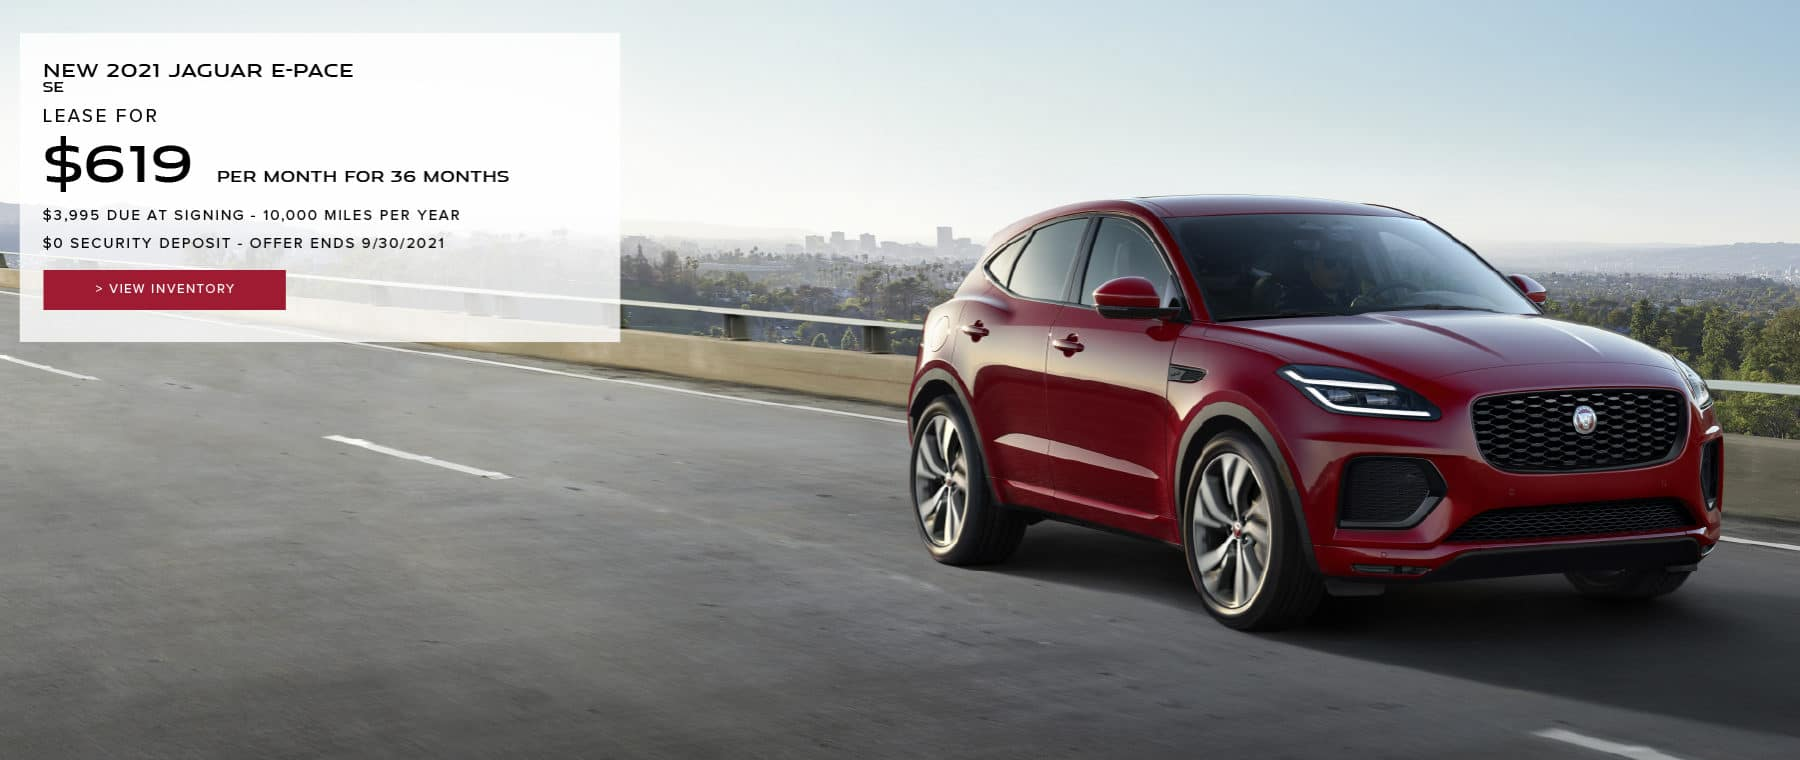 NEW 2021 JAGUAR E-PACE SE. $619 PER MONTH. 36 MONTH LEASE TERM. $3,995 CASH DUE AT SIGNING. $0 SECURITY DEPOSIT. 10,000 MILES PER YEAR. EXCLUDES RETAILER FEES, TAXES, TITLE AND REGISTRATION FEES, PROCESSING FEE AND ANY EMISSION TESTING CHARGE. OFFER ENDS 9/30/2021. VIEW INVENTORY. RED JAGUAR E-PACE DRIVING THORUGH OUTSKIRTS OF TOWN.